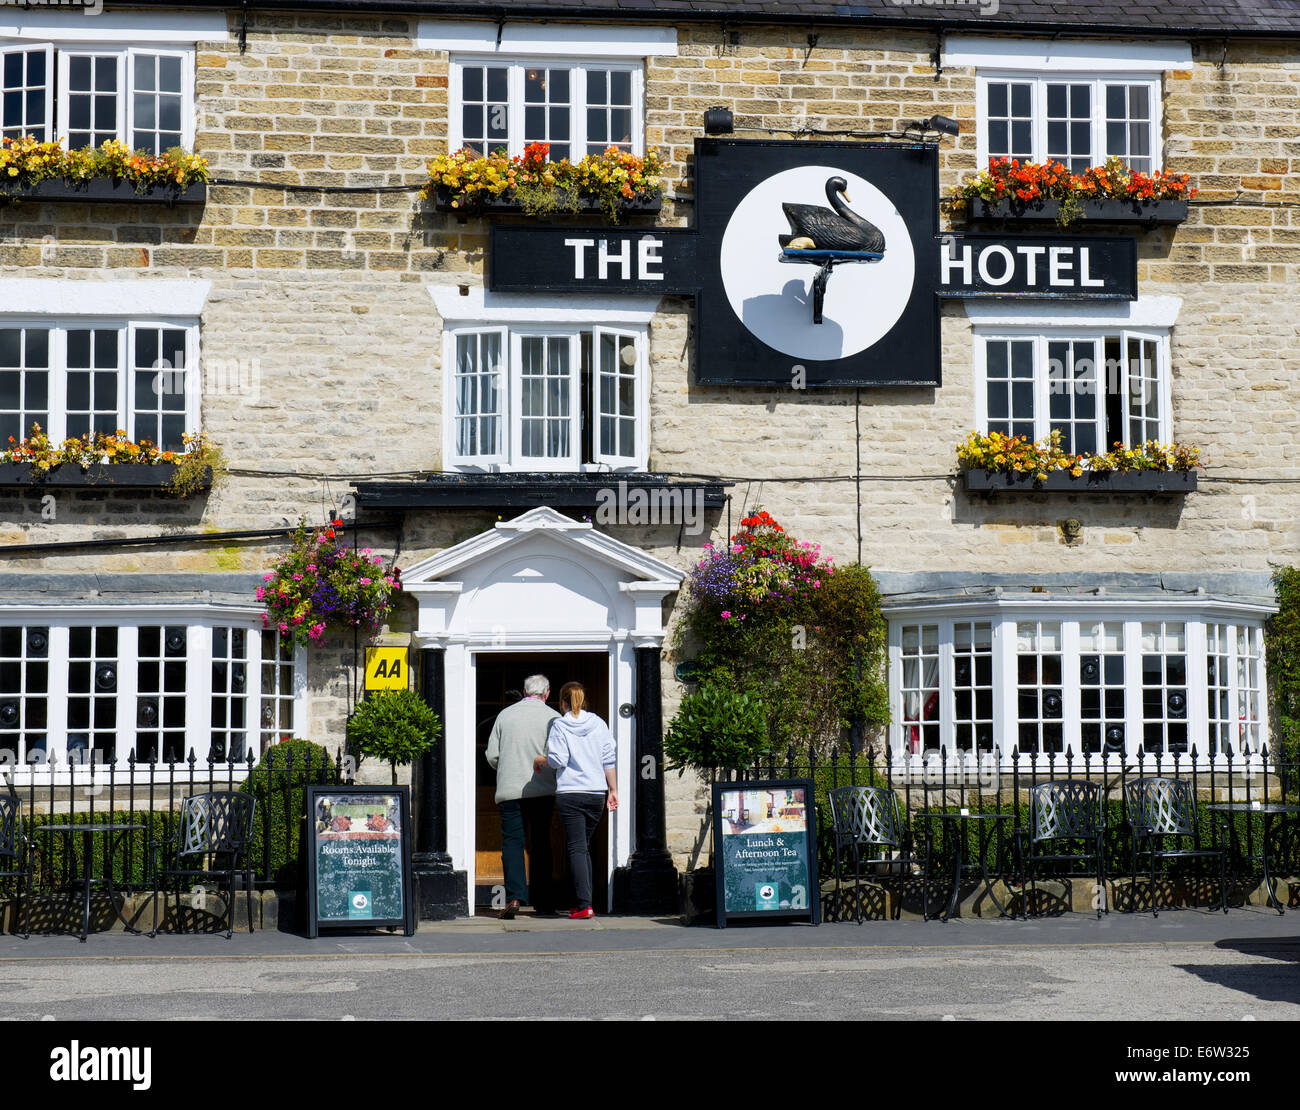 Man and woman walking into the Black Swan Hotel, Helmsley, North Yorkshire, England UK - Stock Image